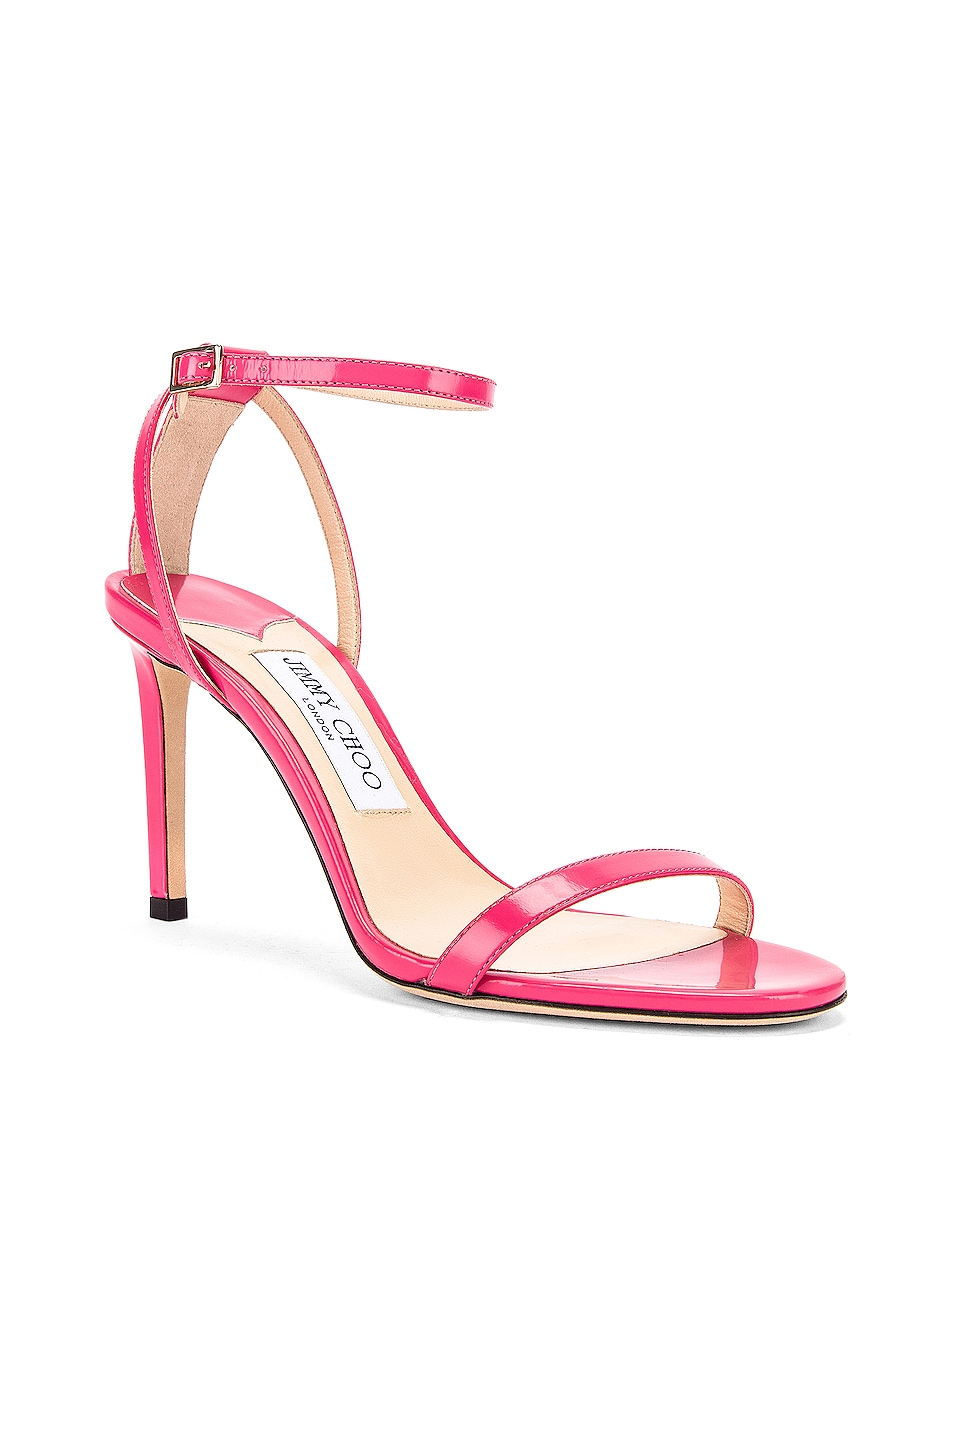 Image 2 of Jimmy Choo Minny 85 Liquid Leather Sandal in Bubble